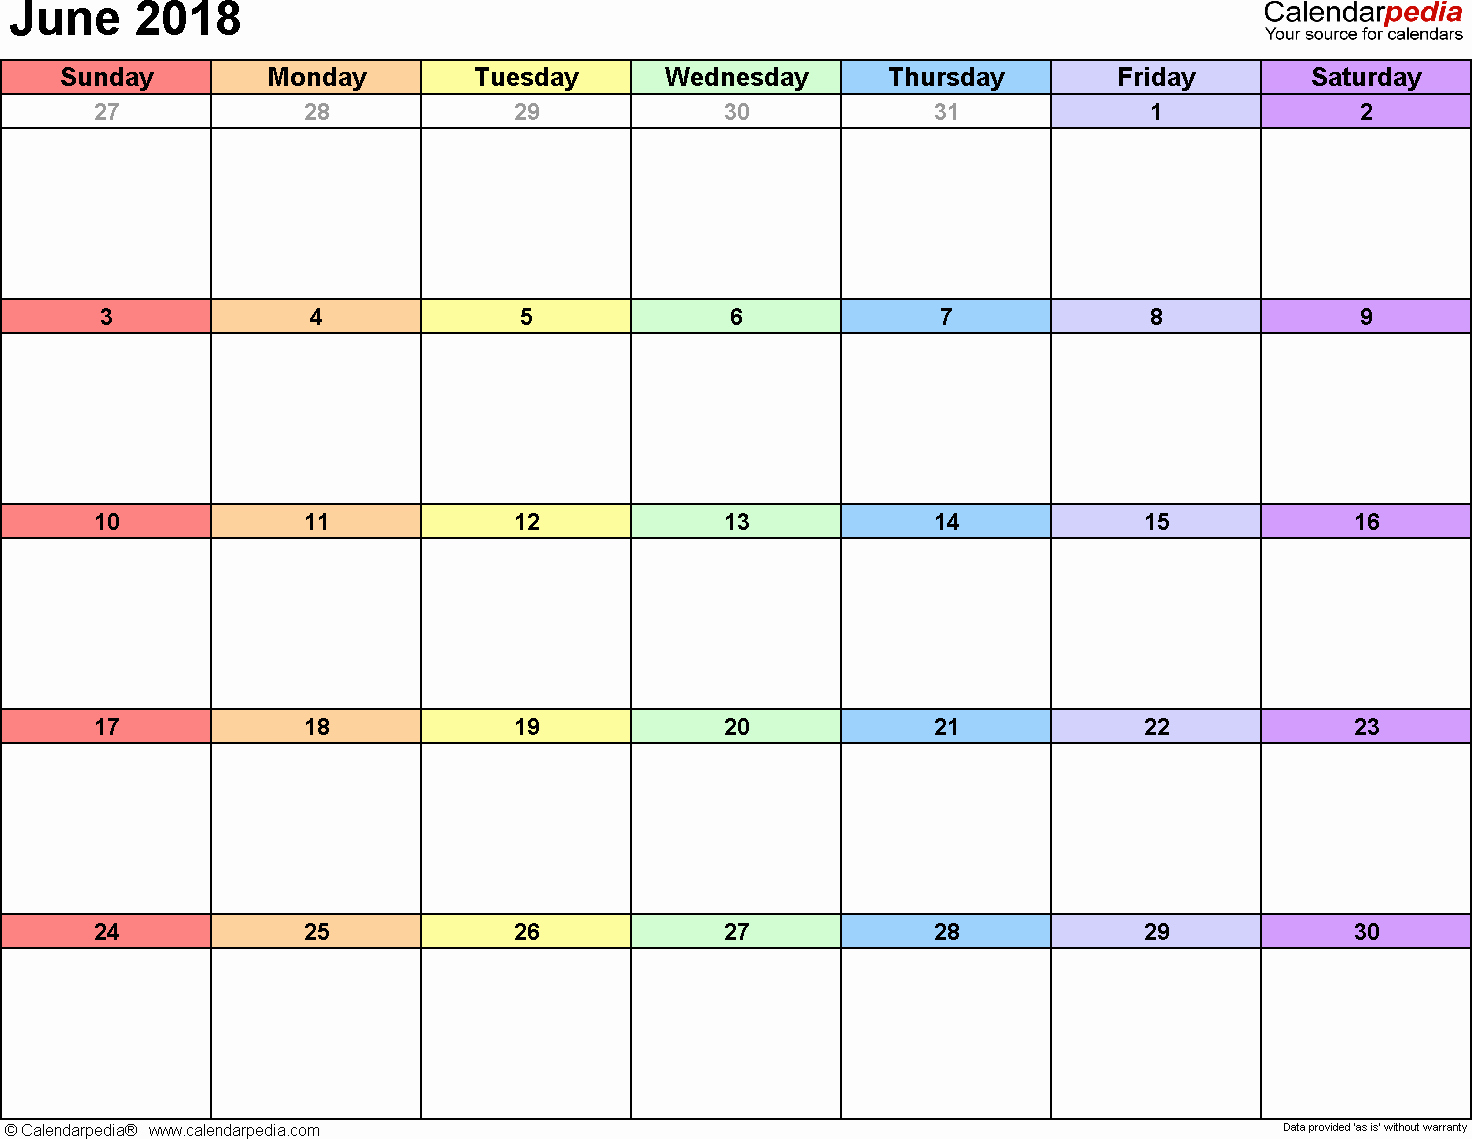 2018 Month by Month Calendar Beautiful June 2018 Calendar Word